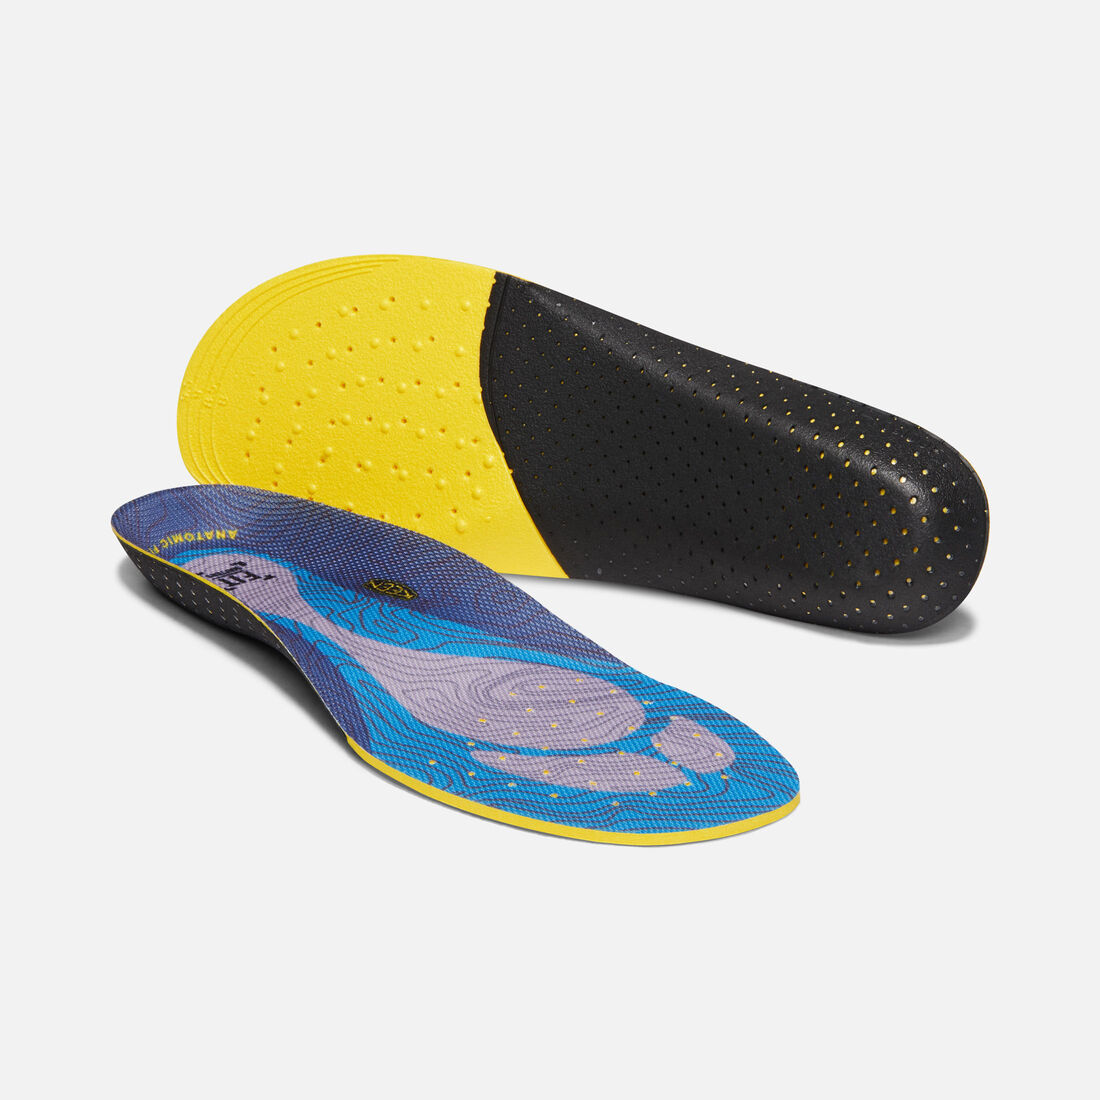 Women's Outdoor K-10 Replacement Insole in OCEAN BLUE - large view.